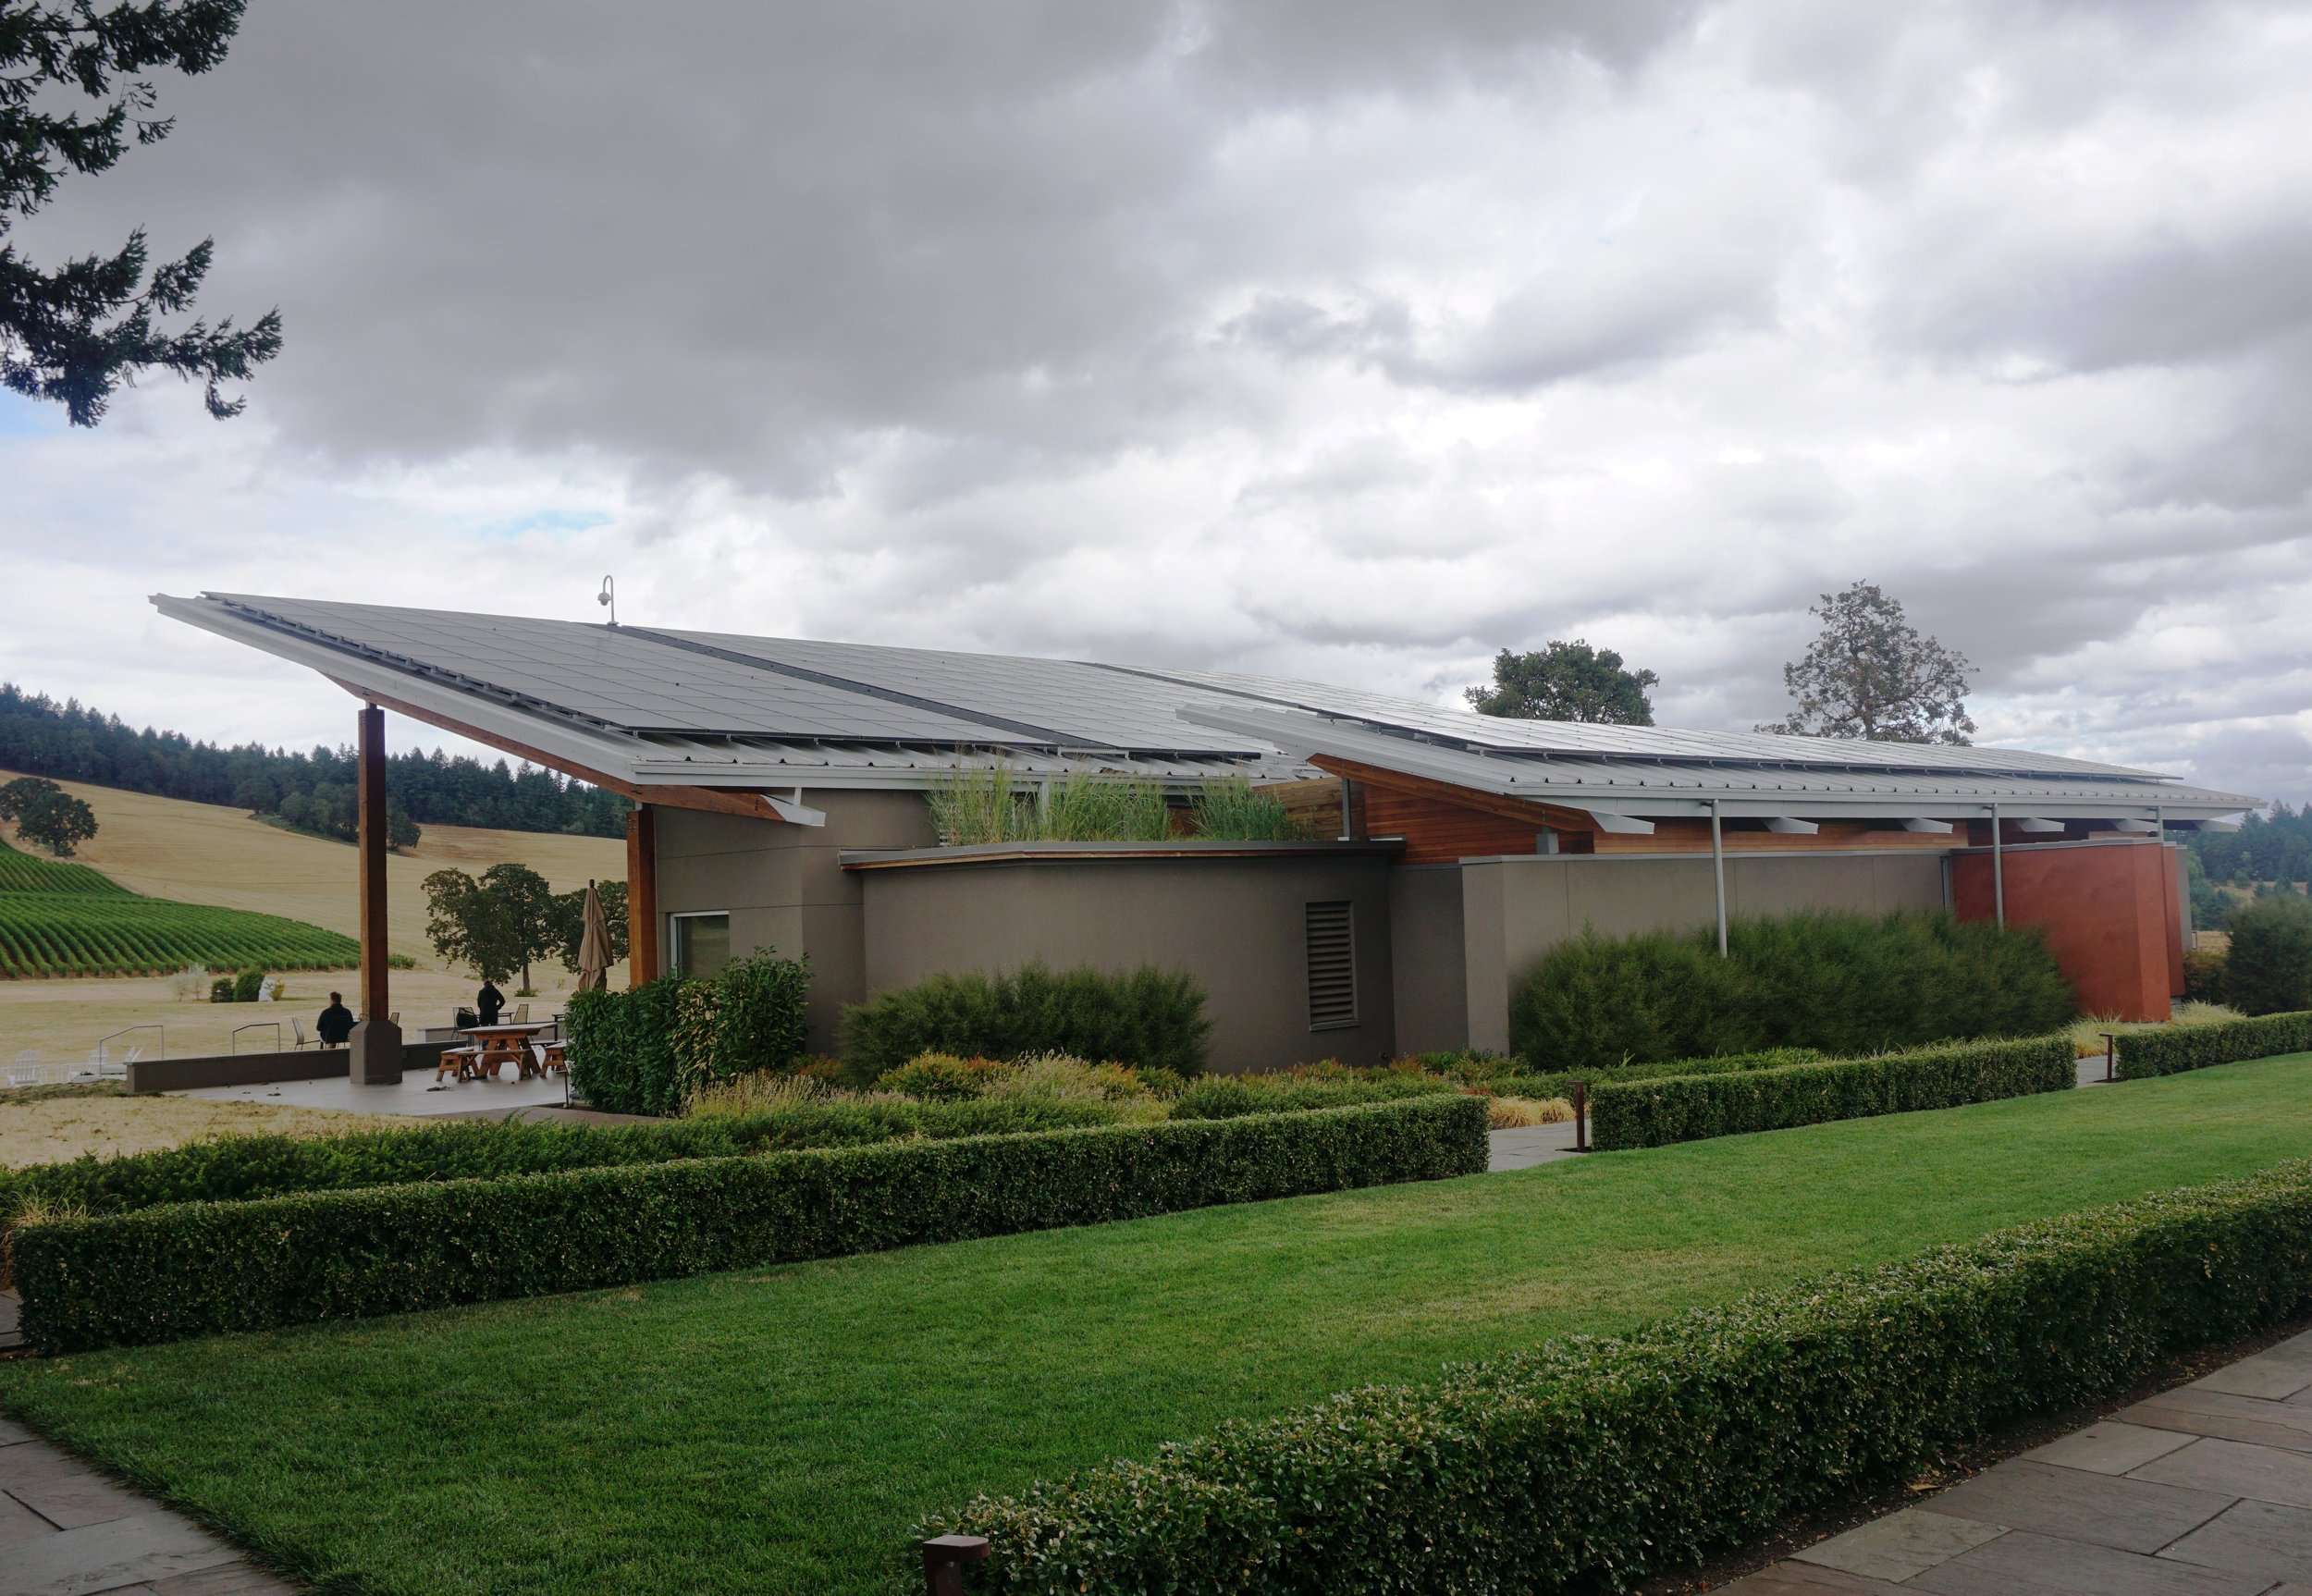 A network of rooftop solar panels is just one of the many features that garnered Dundee Hill's Stoller Family Estate its LEED gold certification. Viki Eierdam